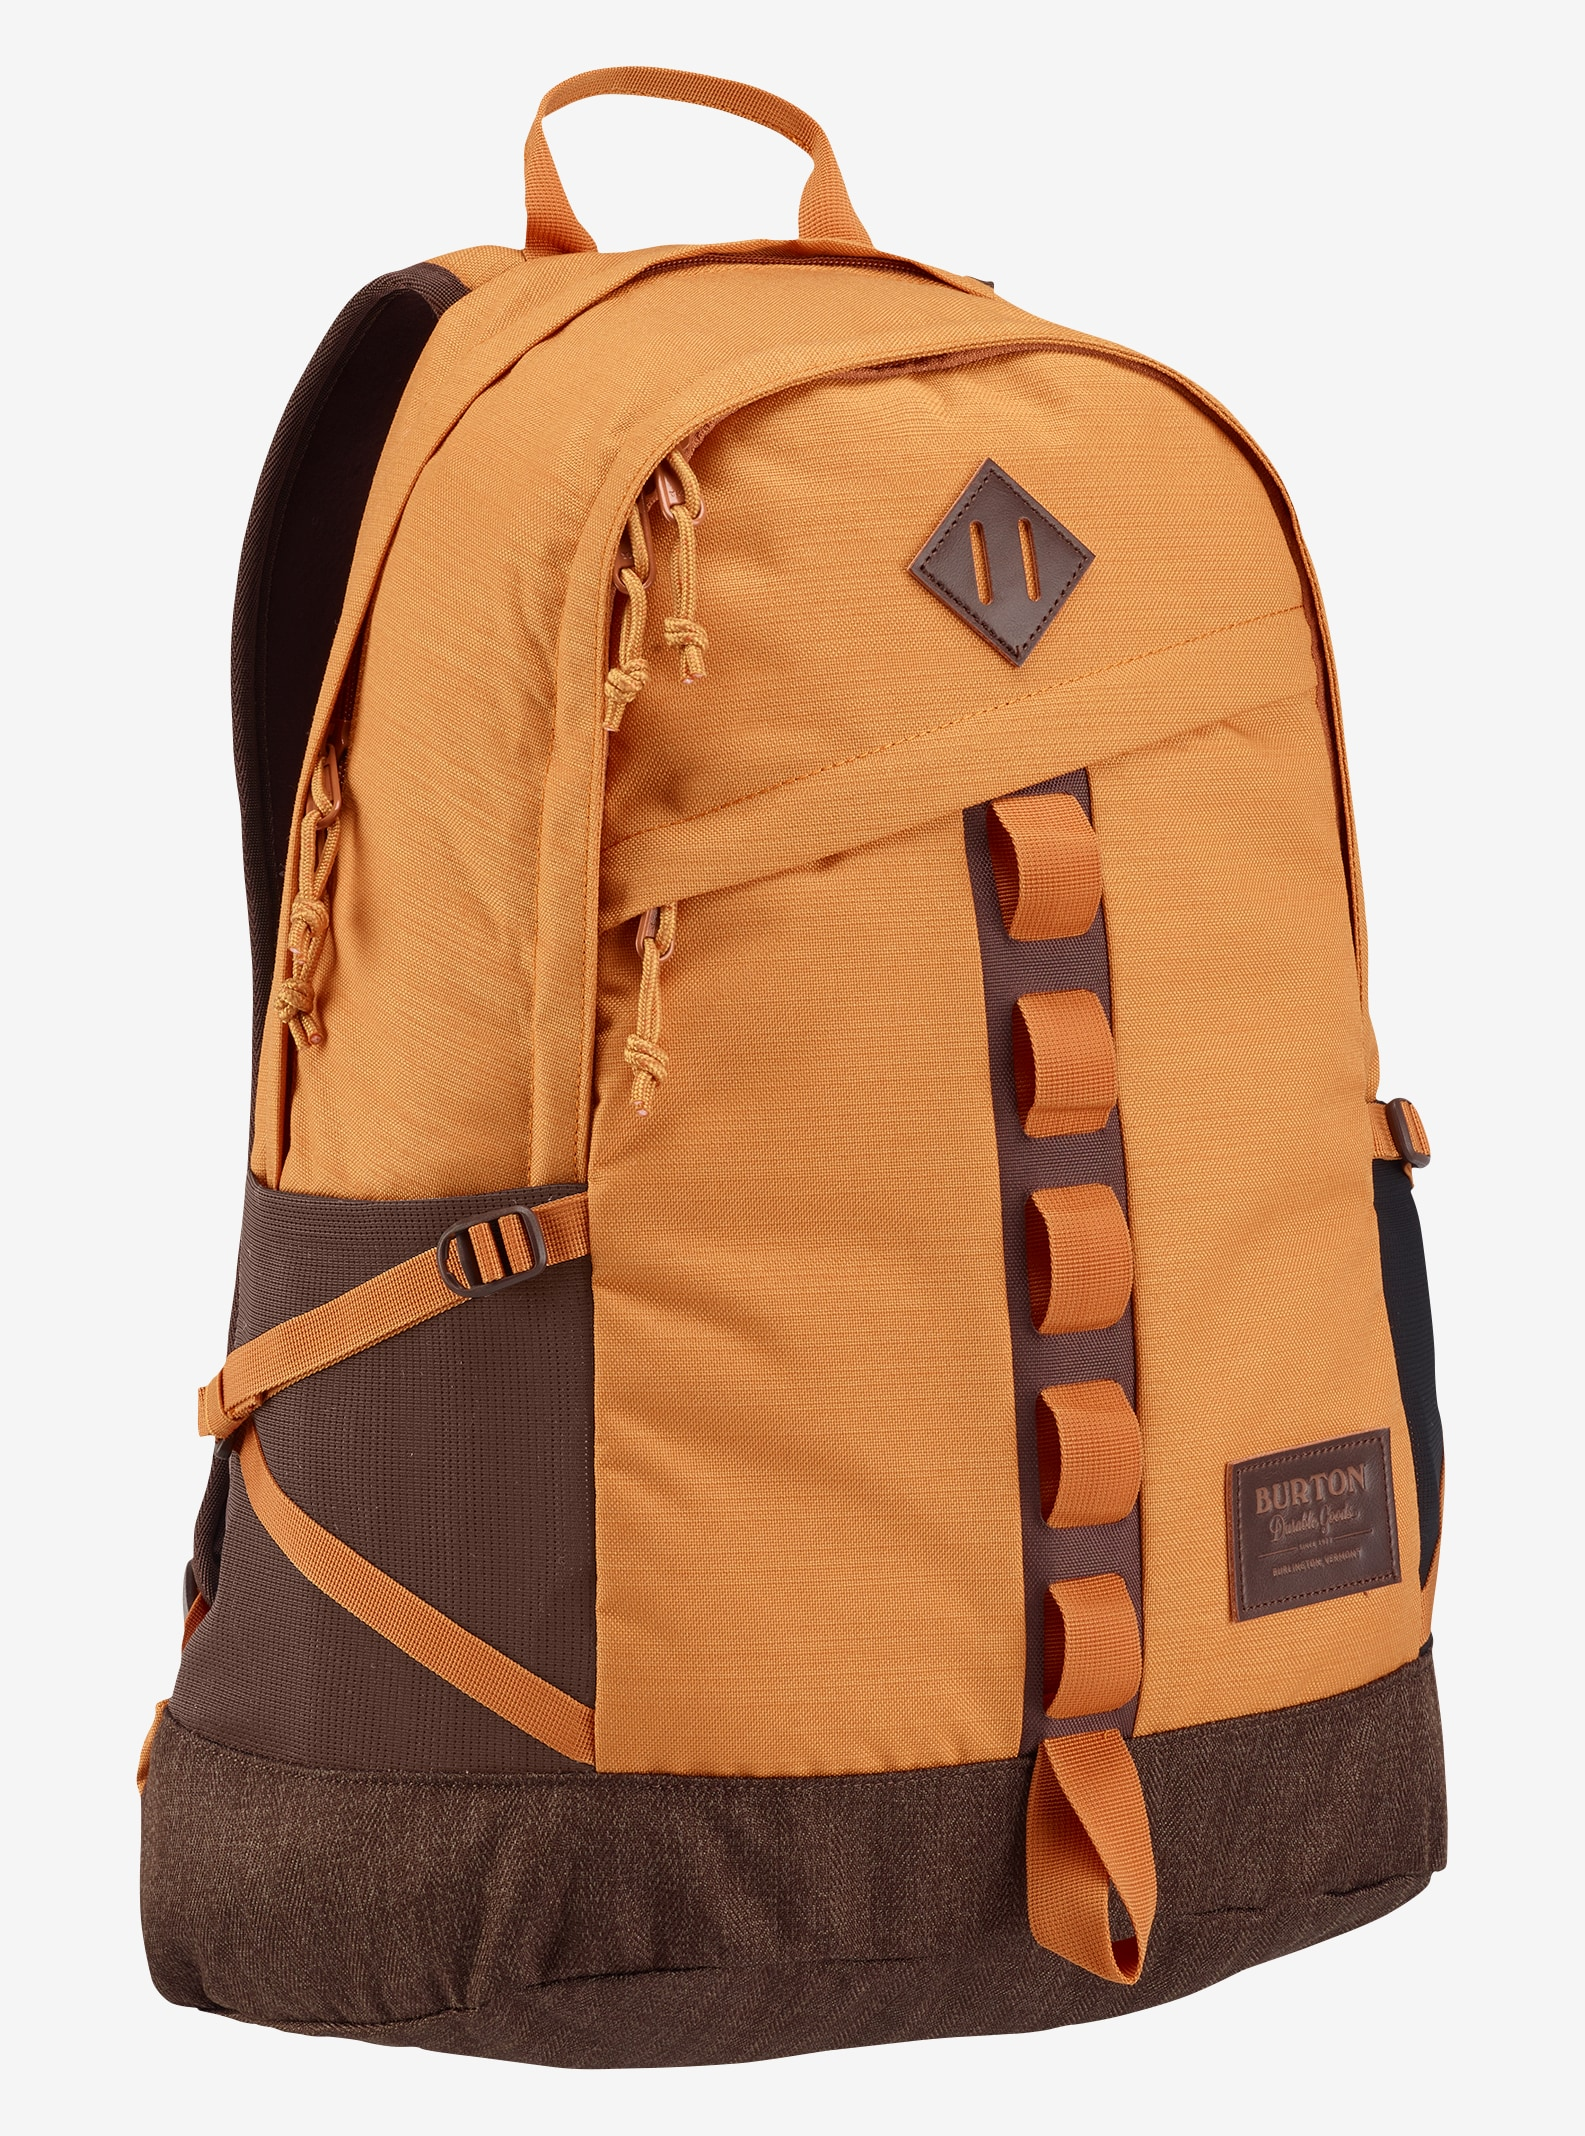 Burton Shackford Backpack shown in Golden Oak Slub